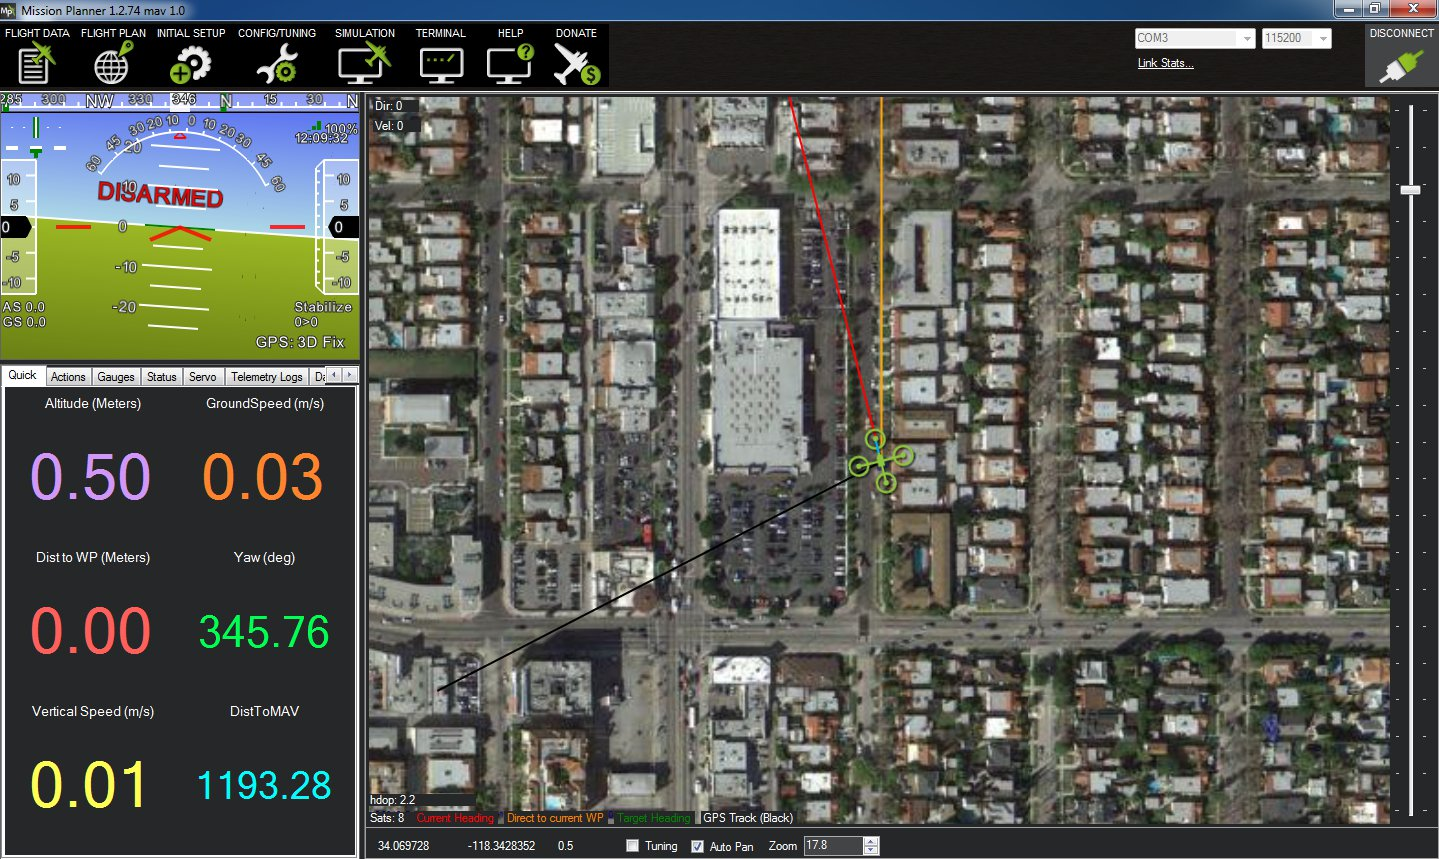 hight resolution of mission planner connected to arduflyer